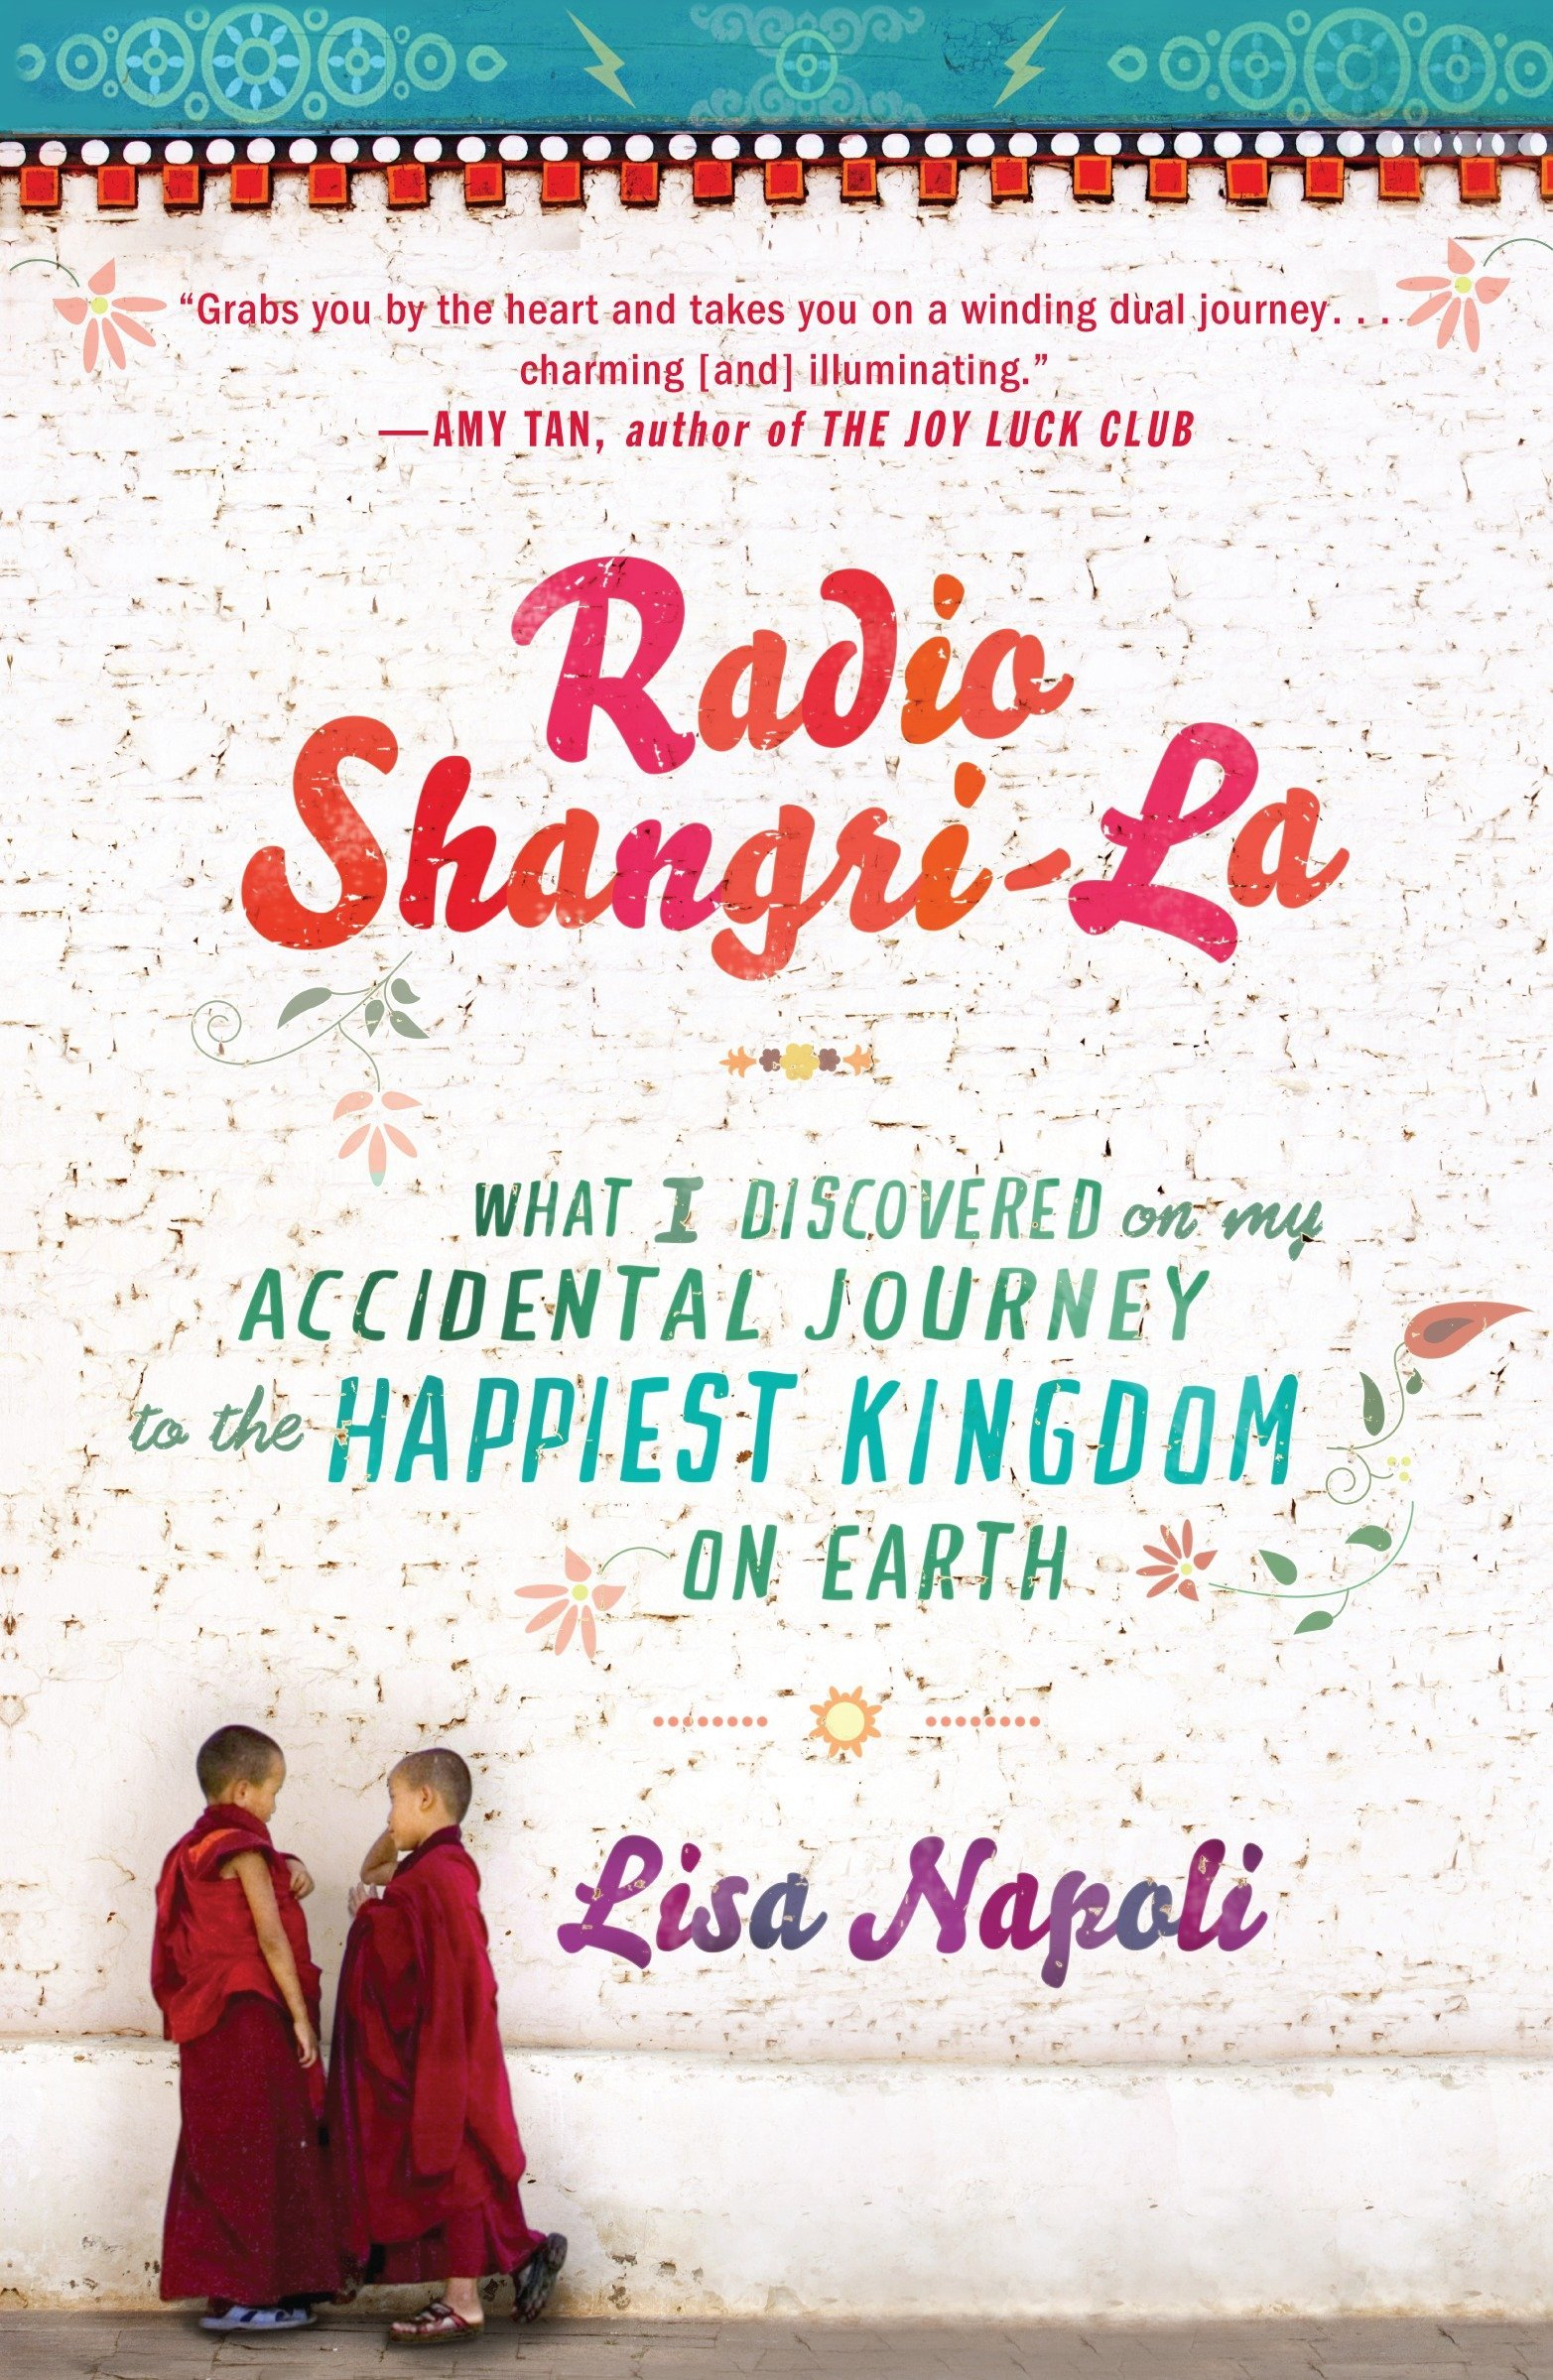 What I Discovered on my Accidental Journey to the Happiest Kingdom on Earth Radio Shangri-La